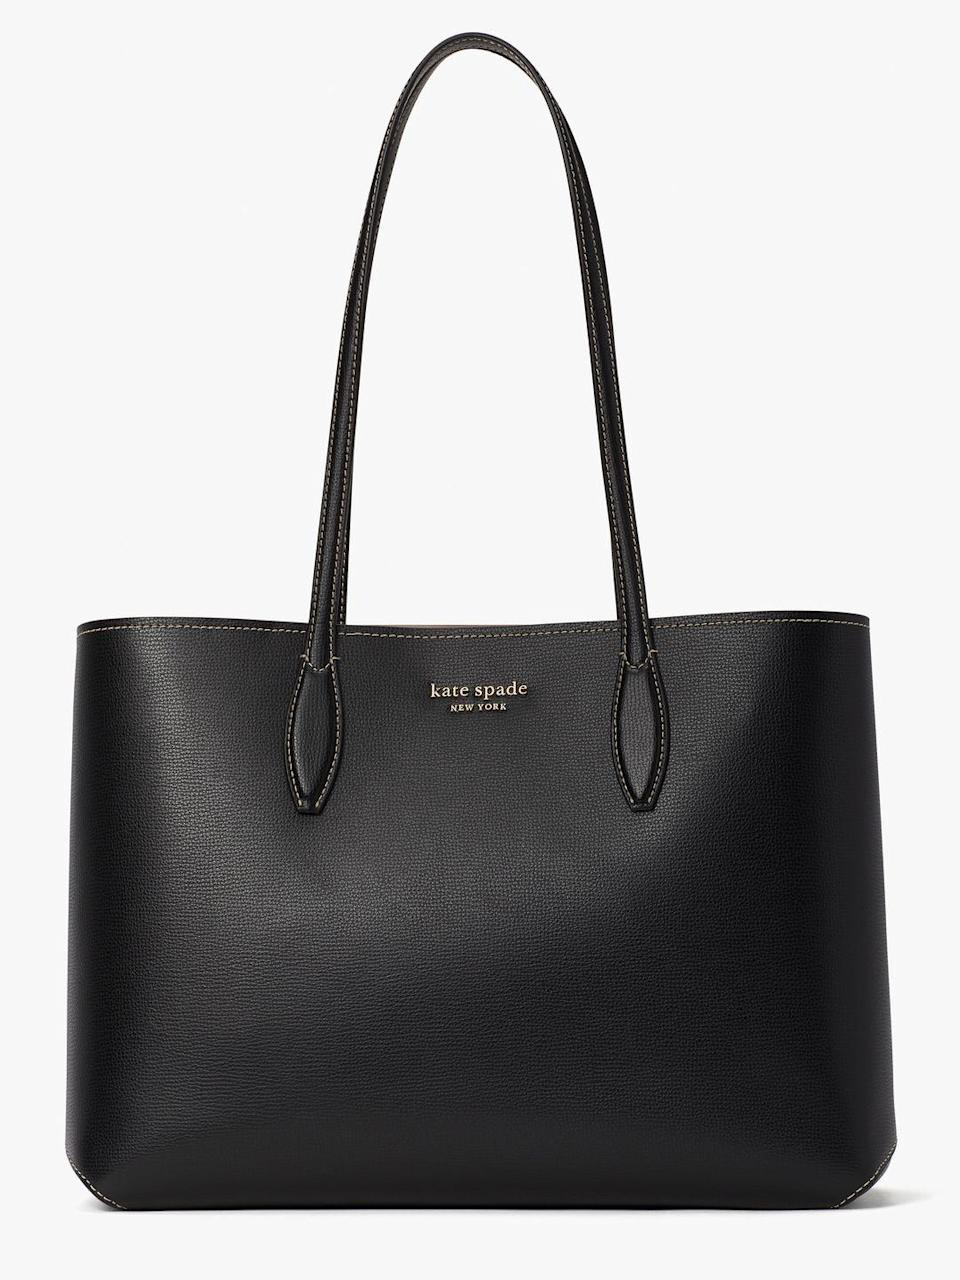 """<p><a class=""""link rapid-noclick-resp"""" href=""""https://go.redirectingat.com?id=127X1599956&url=https%3A%2F%2Fwww.katespade.co.uk%2Fen-gb%2Fhandbags%2Fall-day-large-tote%2FPXR00297.html%3Fdwcolor%3DBLACK%23q%3Dall%252Bday%26start%3D1&sref=https%3A%2F%2Fwww.harpersbazaar.com%2Fuk%2Ffashion%2Fg28897412%2Fwork-bags-women%2F"""" rel=""""nofollow noopener"""" target=""""_blank"""" data-ylk=""""slk:SHOP NOW"""">SHOP NOW</a></p><p>Sometimes the bung-it-all-in bags are the best: freeing yourself from the extra tote obligation on gym day is truly liberating. Kate Spade's shopper isn't called the All Day for nothing: it'll fit your laptop, notebooks and makeup essentials effortlessly (if you don't believe us, see it in action <a href=""""https://go.redirectingat.com?id=127X1599956&url=https%3A%2F%2Fwww.katespade.co.uk%2Fen-gb%2Fhandbags%2Fall-day-large-tote%2FPXR00297.html%3Fdwcolor%3DBLACK%23q%3Dall%252Bday%26start%3D1&sref=https%3A%2F%2Fwww.harpersbazaar.com%2Fuk%2Ffashion%2Fg28897412%2Fwork-bags-women%2F"""" rel=""""nofollow noopener"""" target=""""_blank"""" data-ylk=""""slk:here"""" class=""""link rapid-noclick-resp"""">here</a>). If the open top poses a security issue, fret not, this one comes with a detachable zip pouch so you can keep your valuables safes.</p><p>All Day large tote, £225, <a href=""""https://go.redirectingat.com?id=127X1599956&url=https%3A%2F%2Fwww.katespade.co.uk%2Fen-gb%2Fhandbags%2Fall-day-large-tote%2FPXR00297.html%3Fdwcolor%3DBLACK%23q%3Dall%252Bday%26start%3D1&sref=https%3A%2F%2Fwww.harpersbazaar.com%2Fuk%2Ffashion%2Fg28897412%2Fwork-bags-women%2F"""" rel=""""nofollow noopener"""" target=""""_blank"""" data-ylk=""""slk:Kate Spade"""" class=""""link rapid-noclick-resp"""">Kate Spade</a><br></p>"""